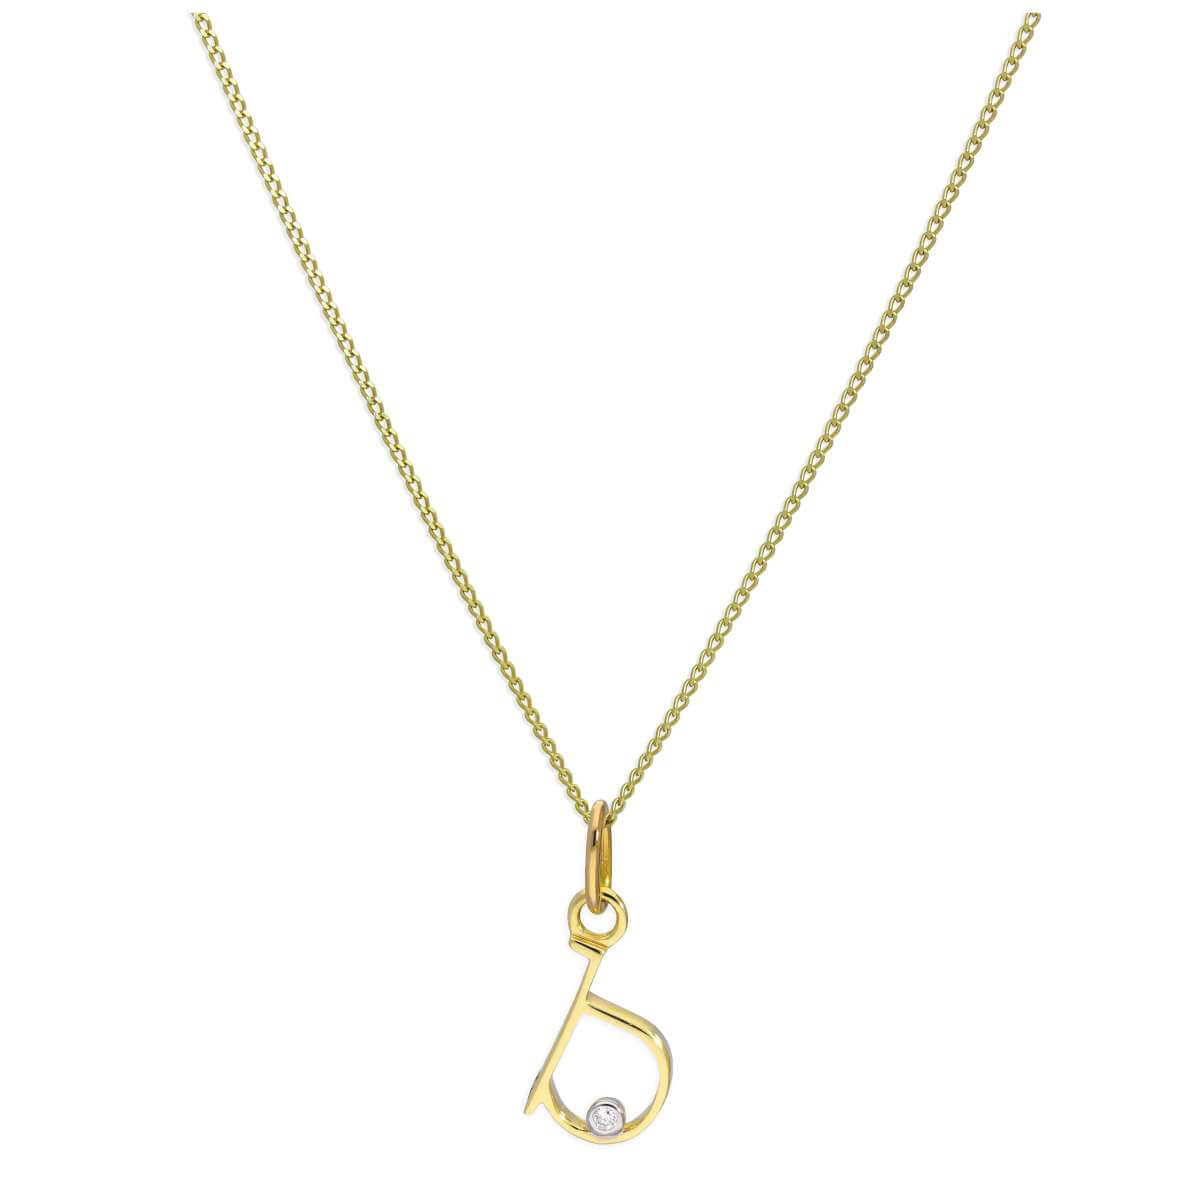 9ct Yellow Gold Single Stone Diamond 0.4 points Letter B Necklace Pendant 16 - 20 Inches